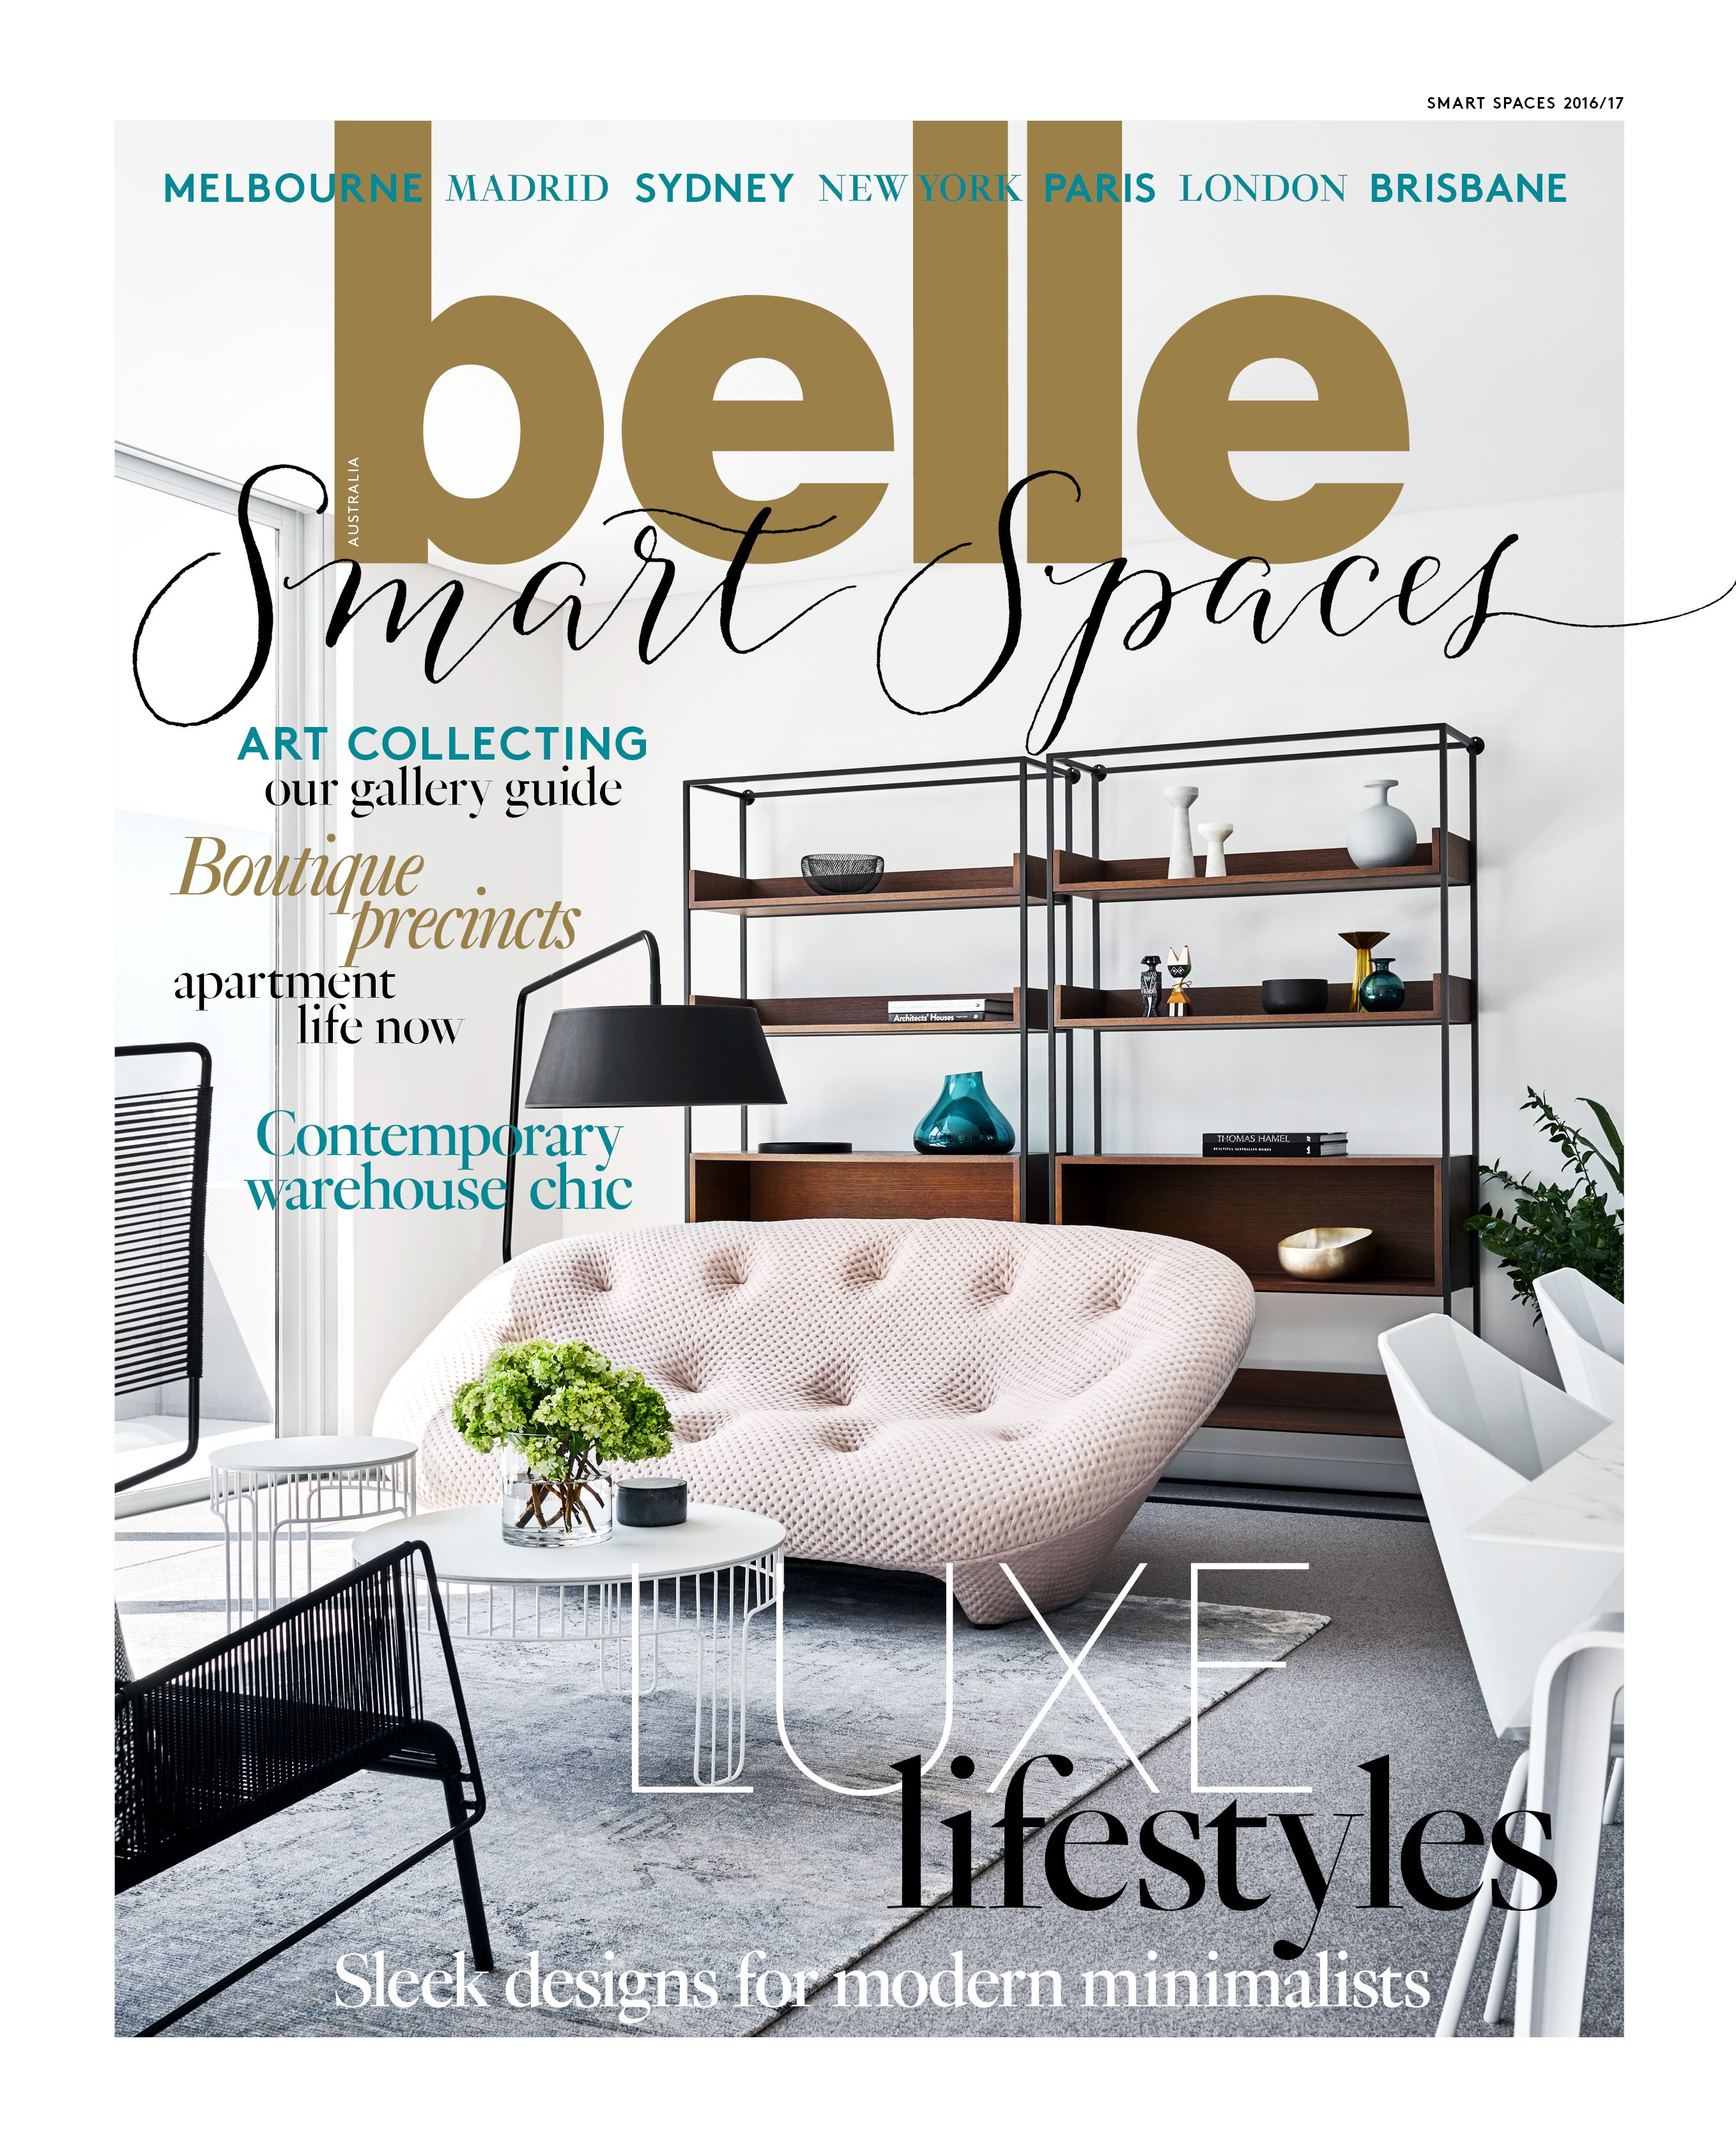 Smart Spaces cover